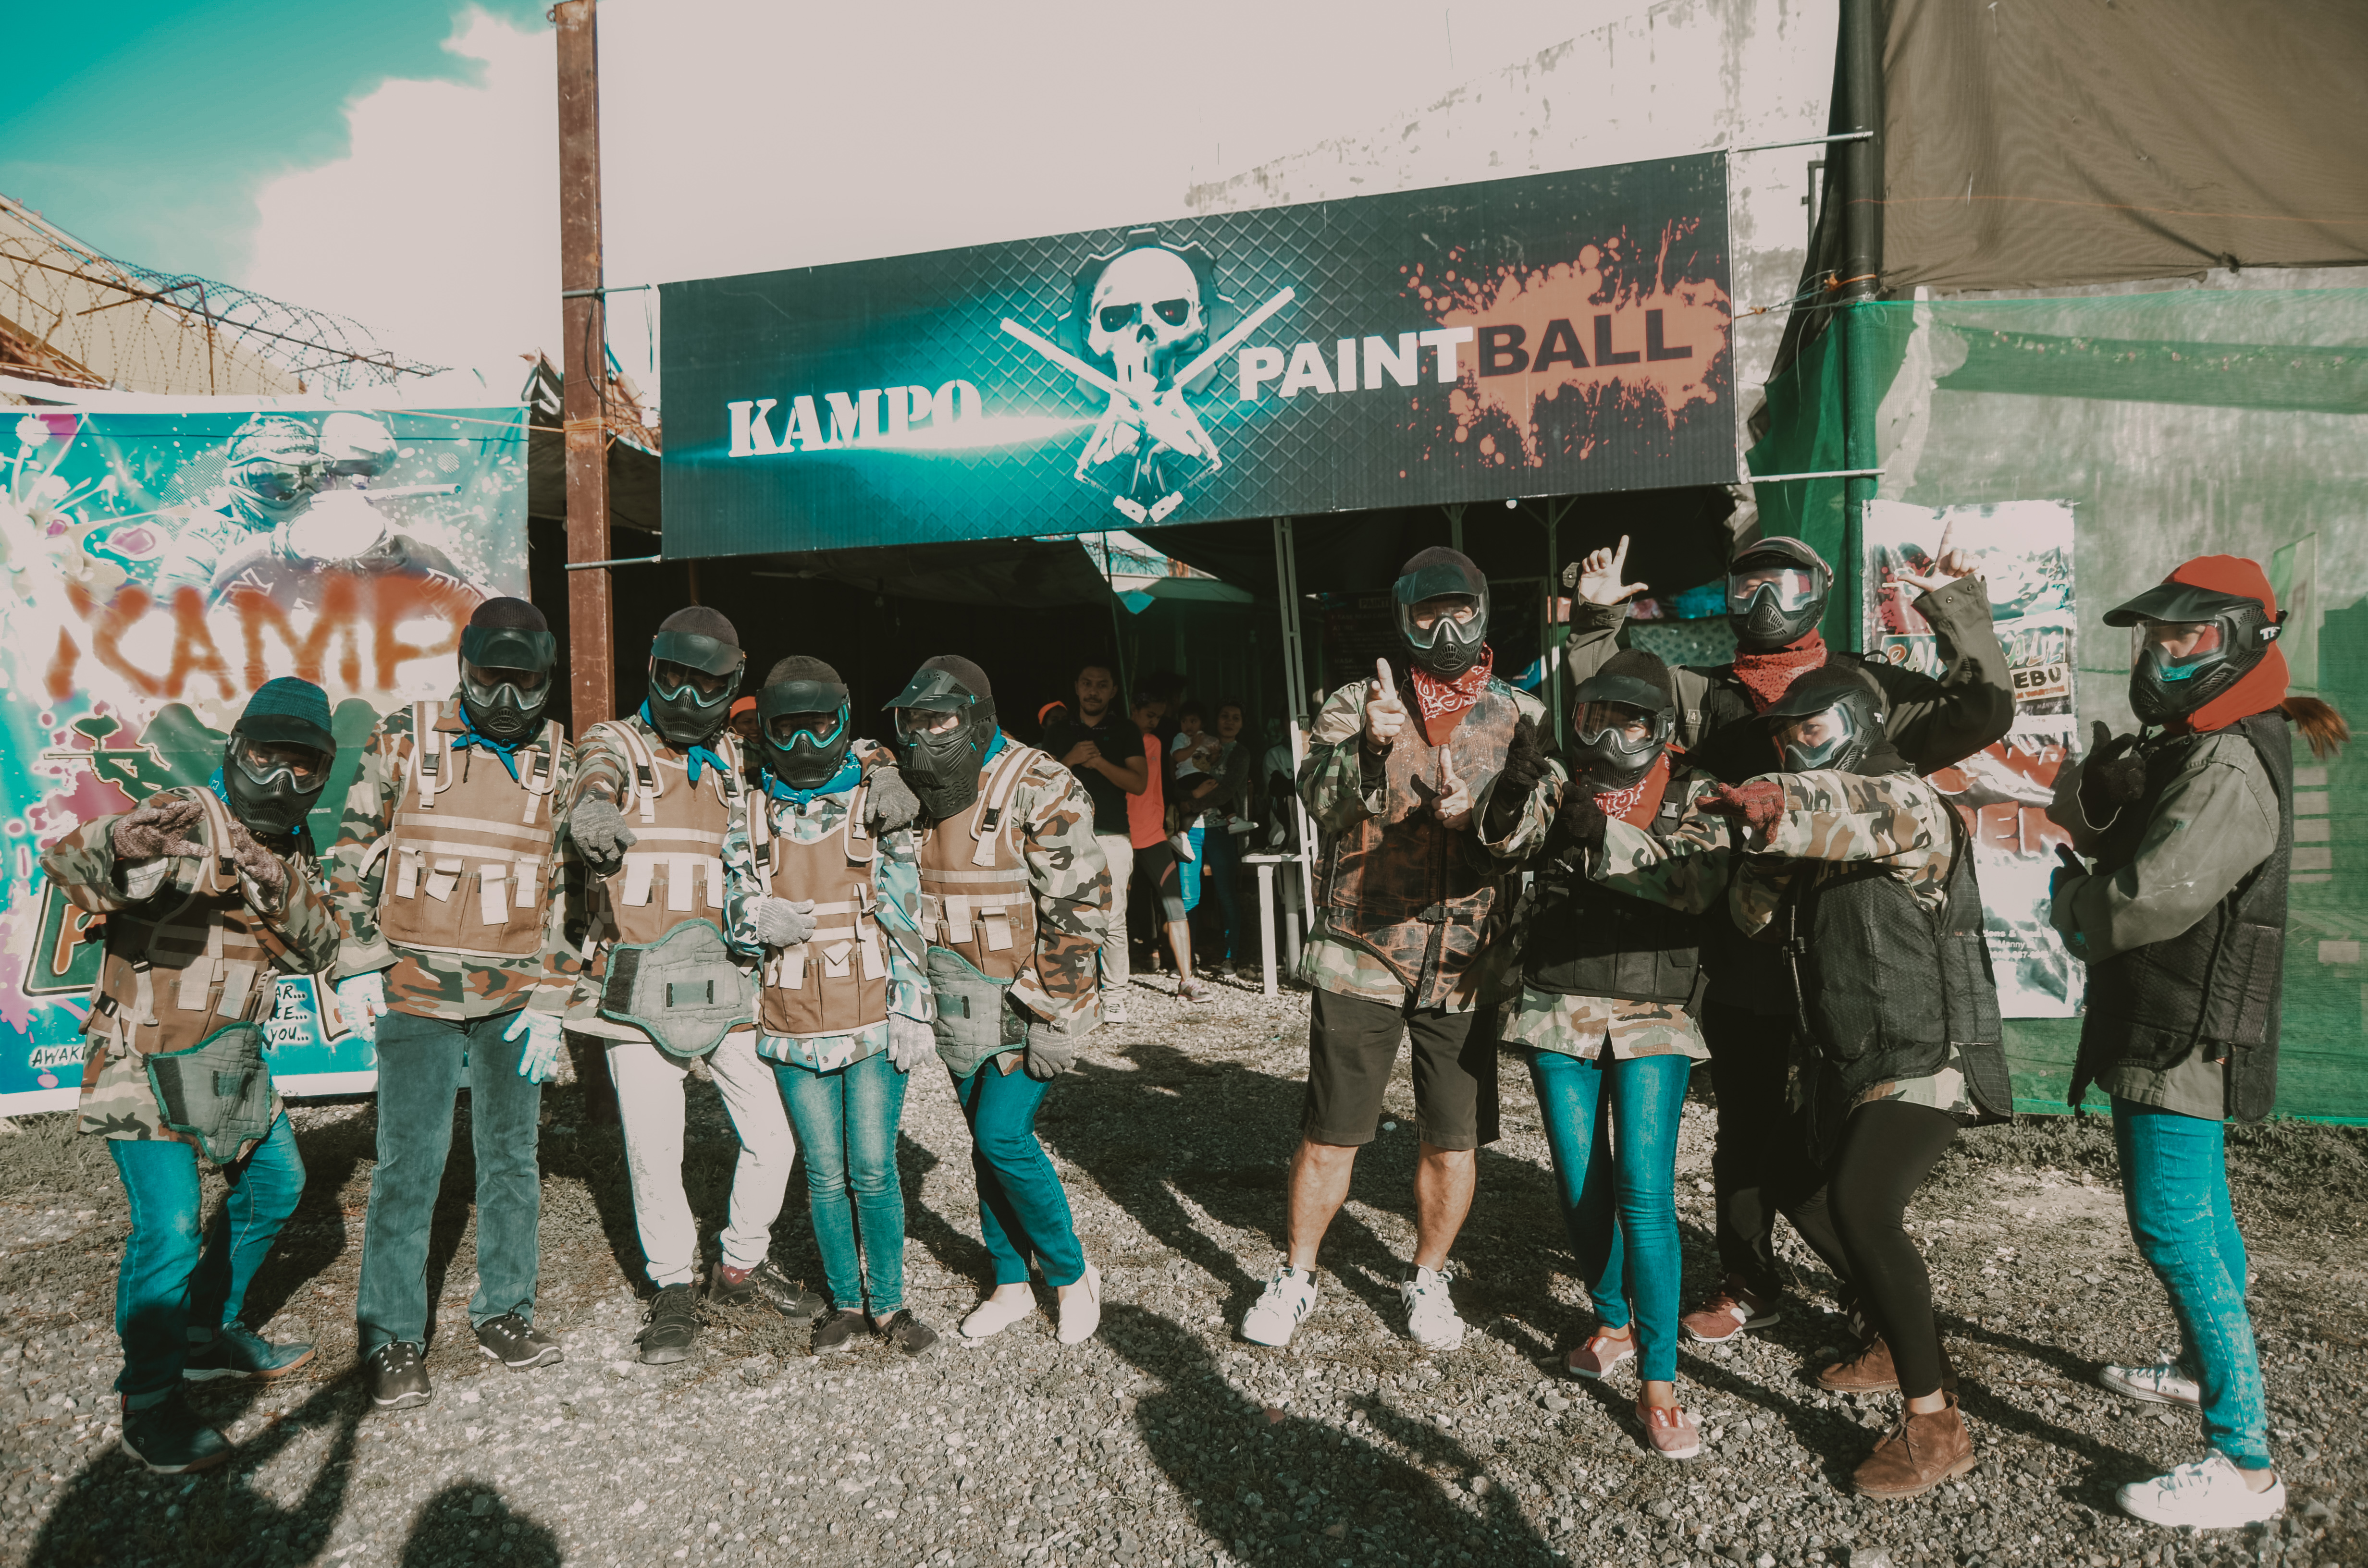 Blueprint paintball battle blueprint business solutions corp the green and orange teams were pitted against each other with orange as the winner purple allocated the war zone with the winning group orange yet malvernweather Gallery